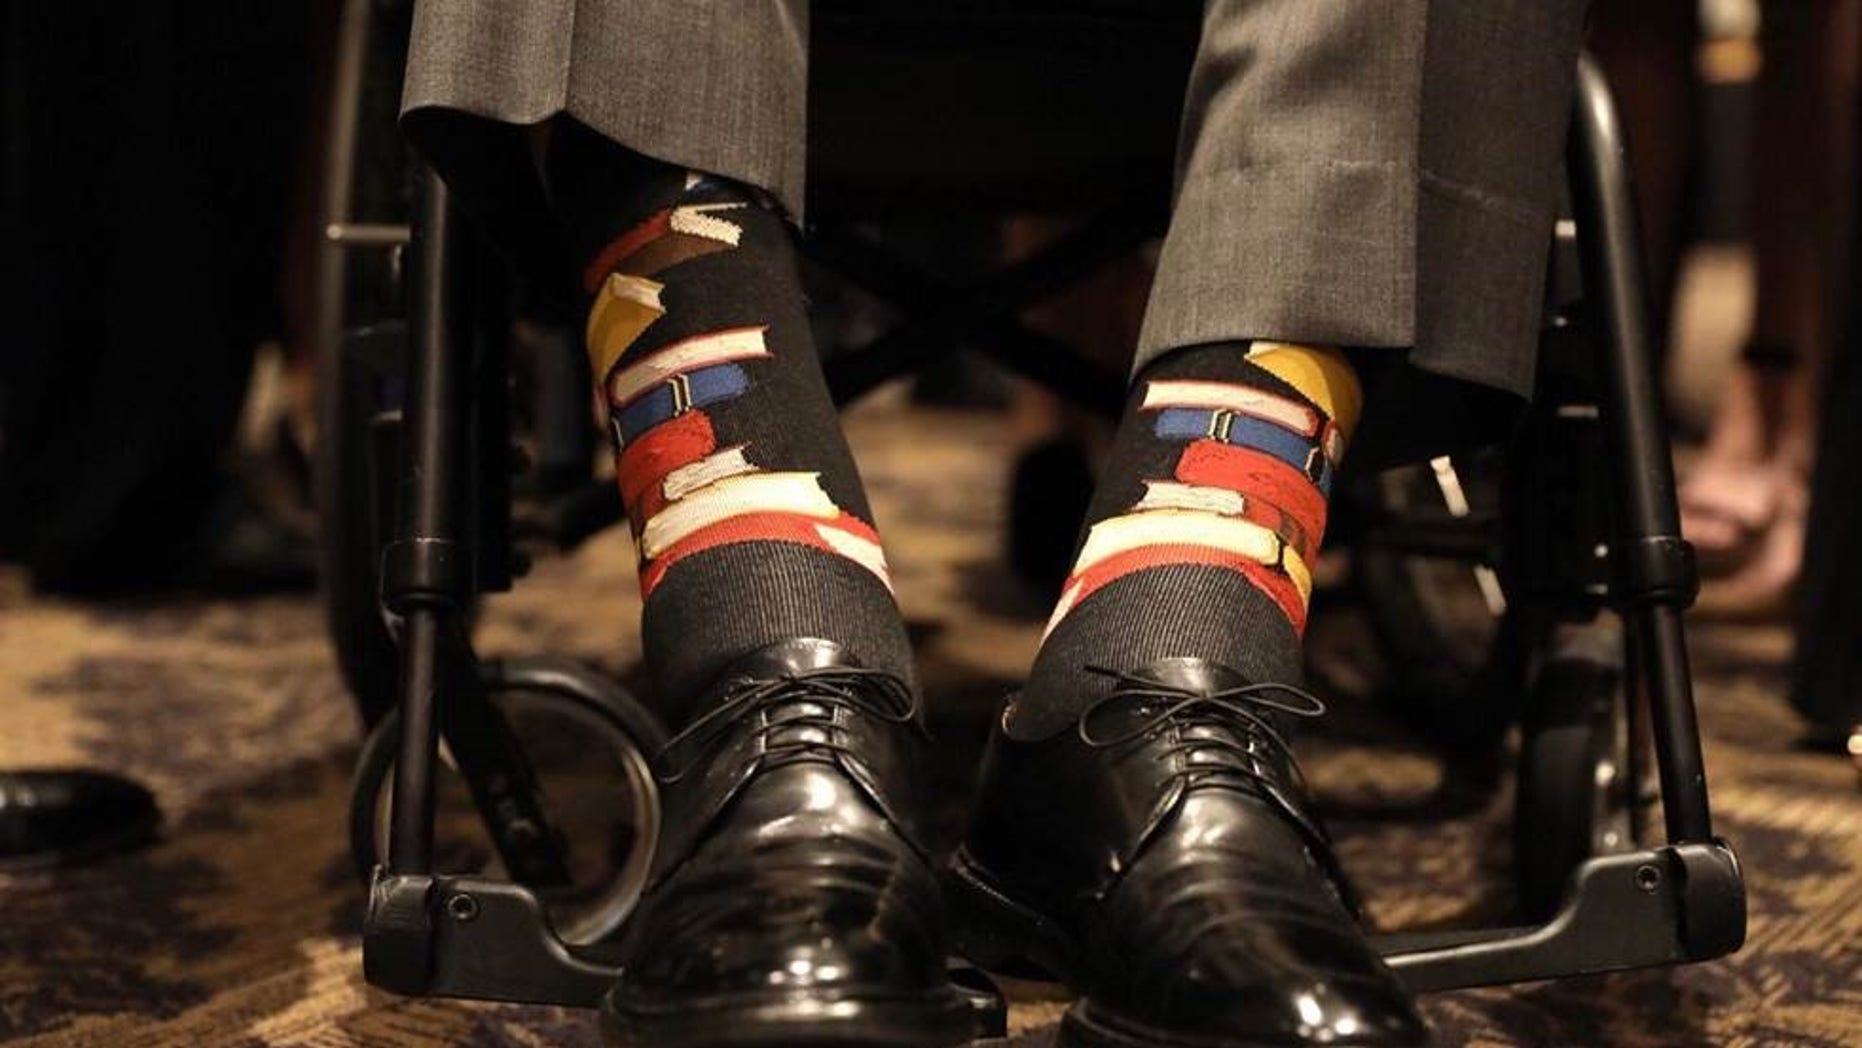 Former President George H.W. Bush wore socks with books stitched on them to honor his late wife's commitment to literacy.